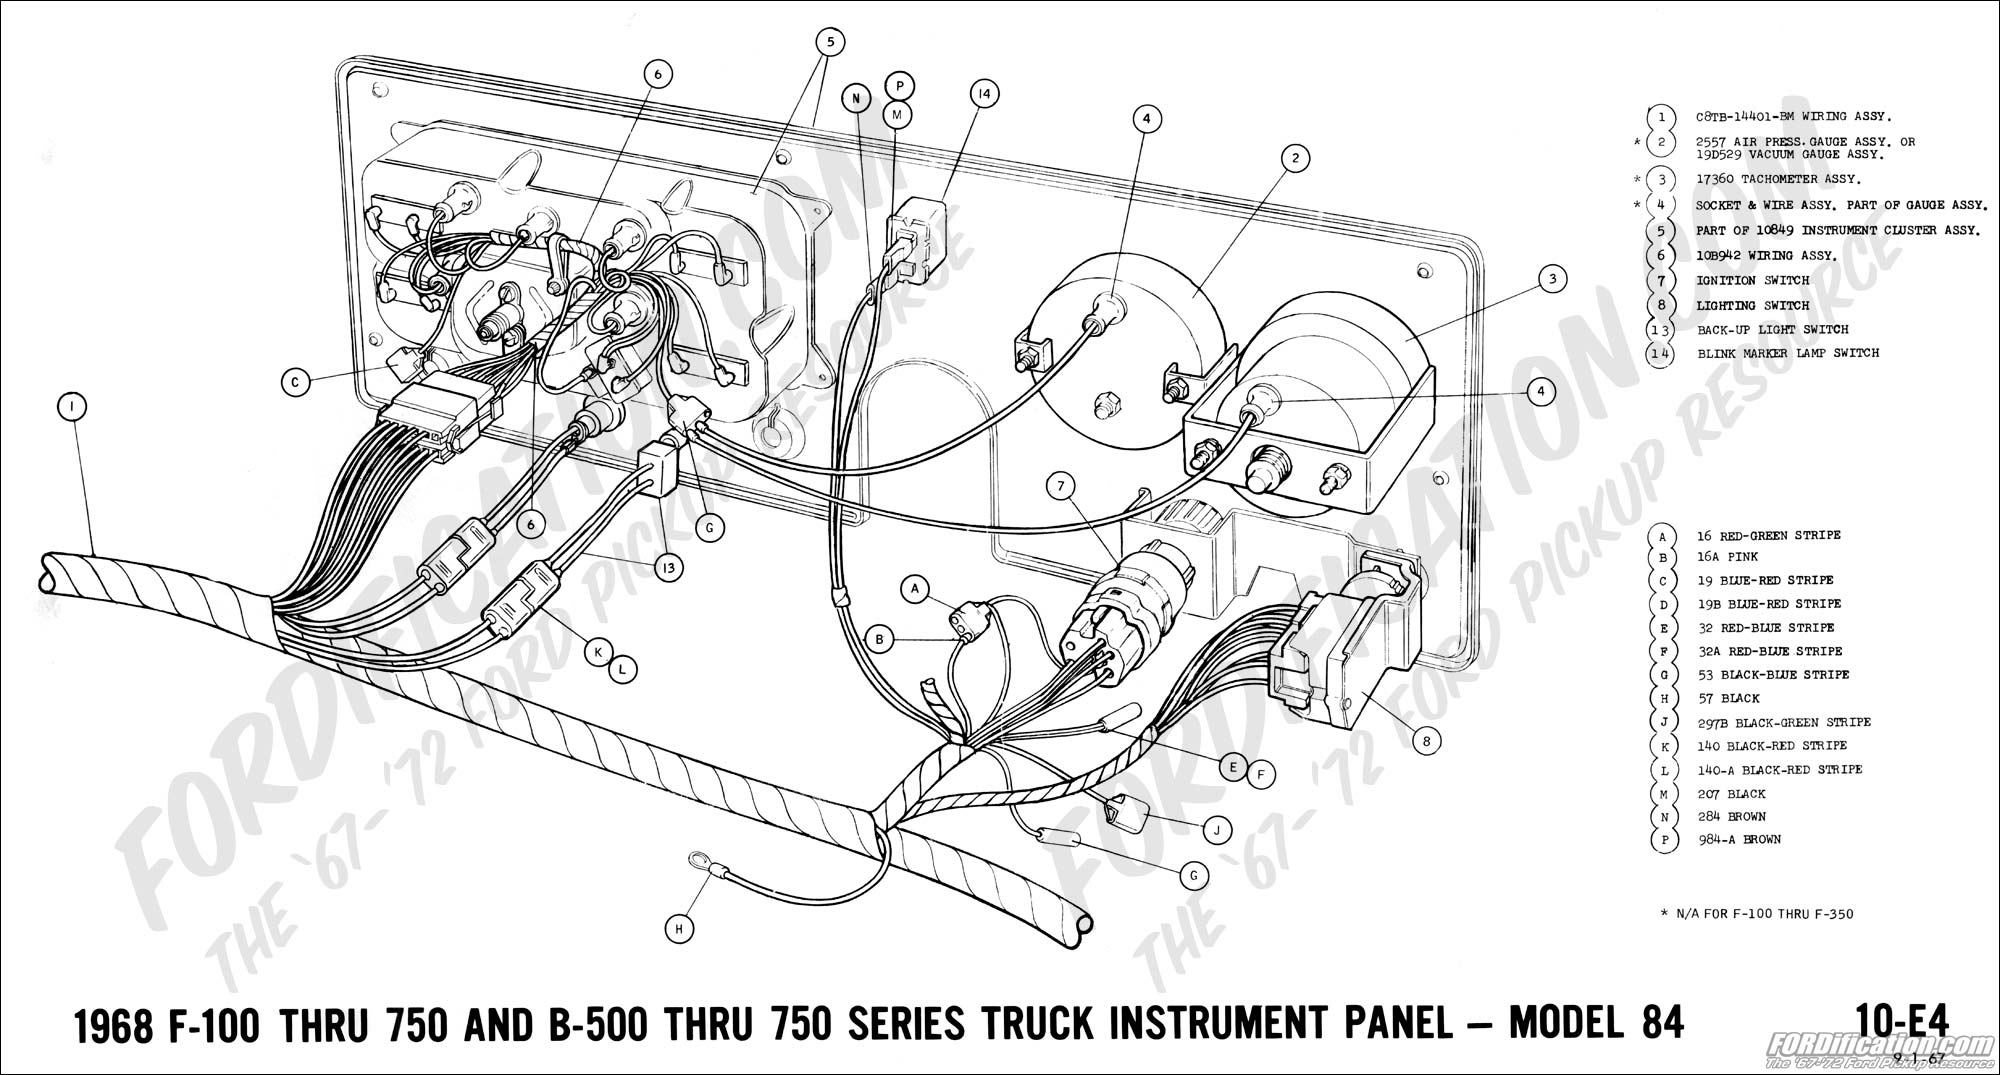 1979 ford mustang ignition wiring diagram with Schematics H on 72 Monte Carlo Wiring Diagram furthermore Need 85 So F150 Charging Circuit Wire Diagram 178509 also P 0996b43f8036fcbc further 1236784 1968 F100 Turn Signals Working Like Hazards further 68 Camaro Wiring Harness Diagram.